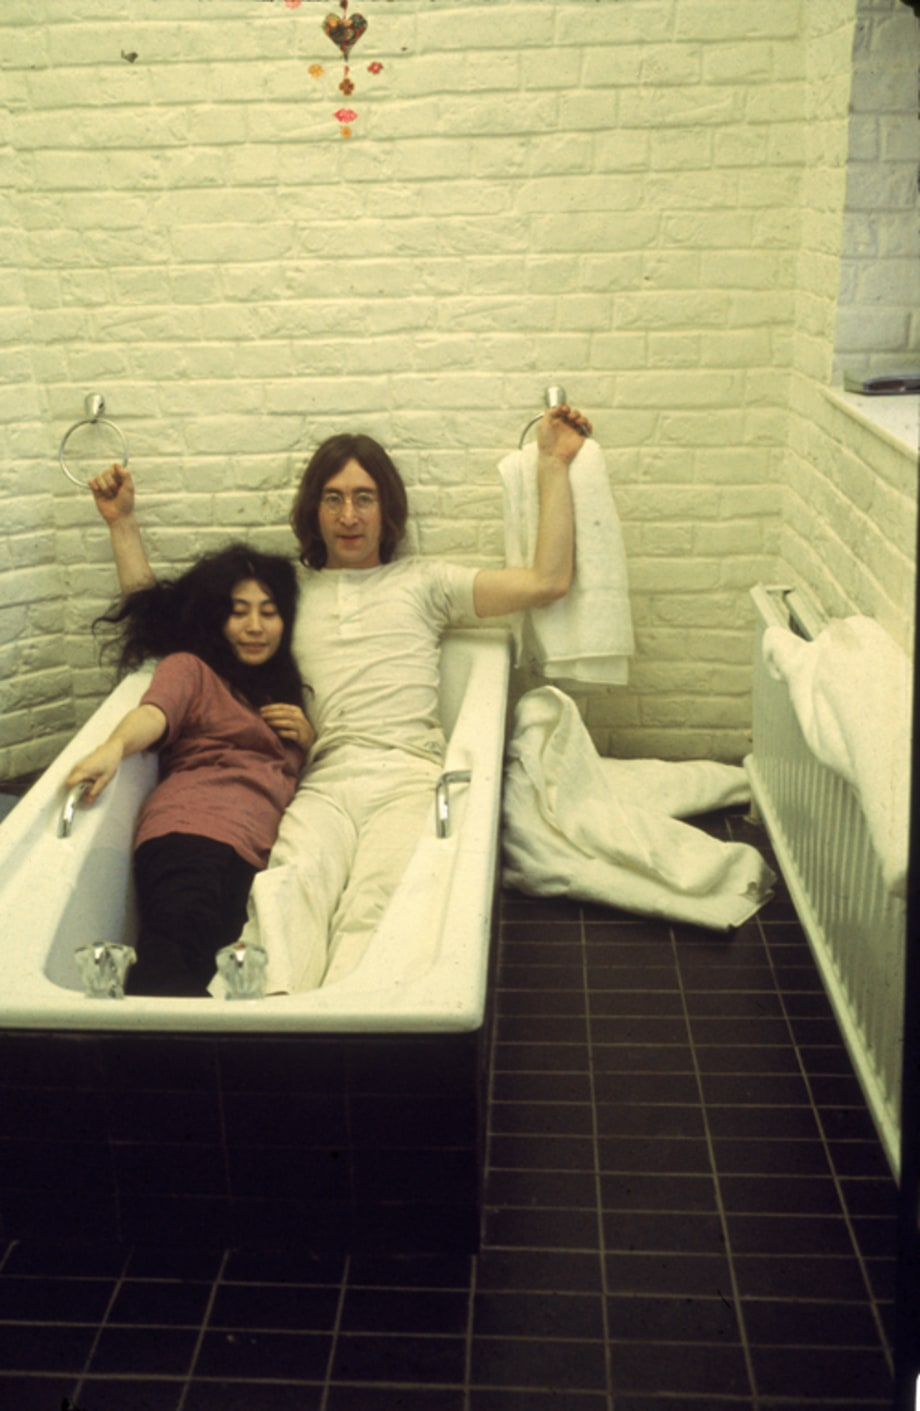 John and Yoko in a Tub